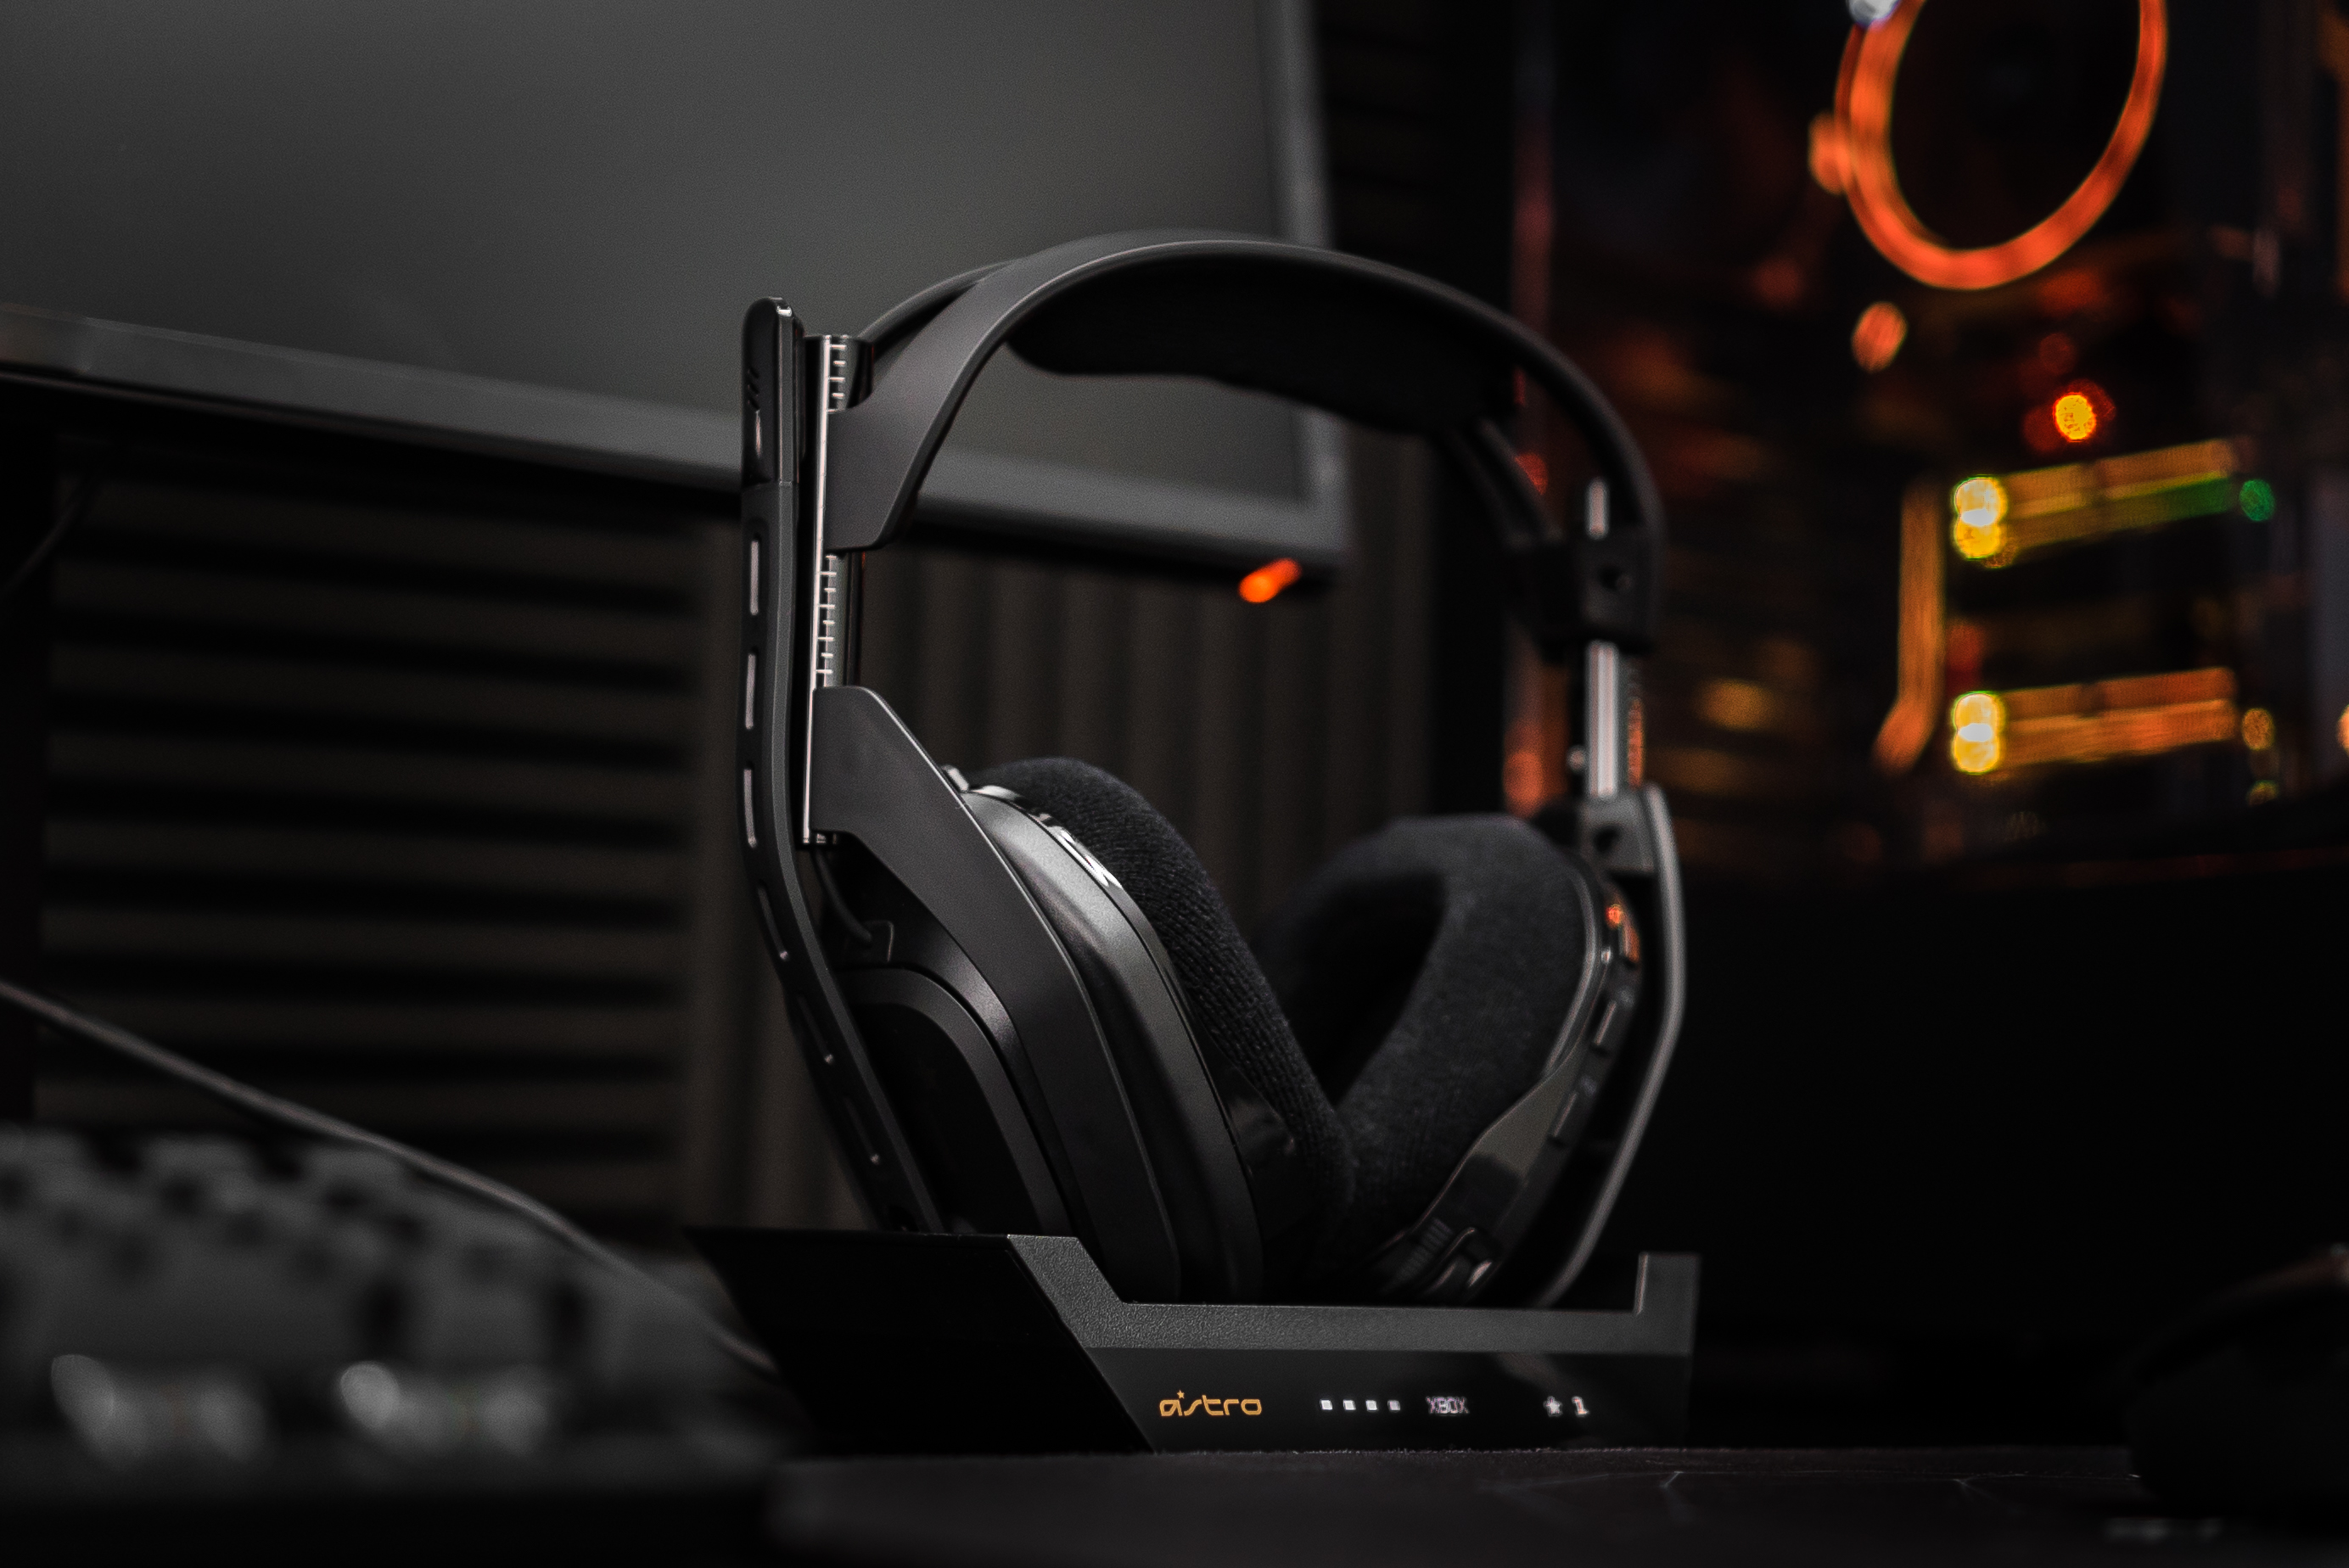 ebb88028c5b E3 2019: Astro Gaming's new A50 wireless headset will take elite gaming to  a whole new level